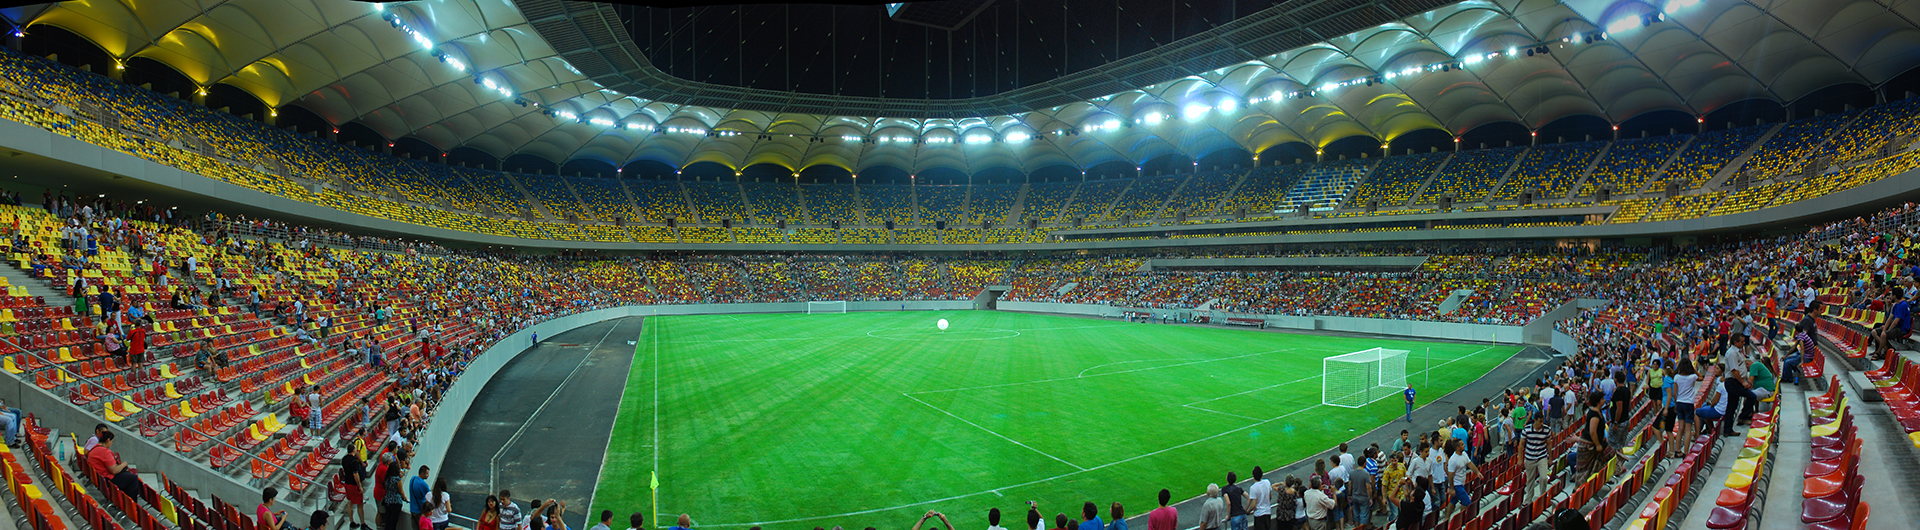 RO_B_National_Arena_panoramic_1